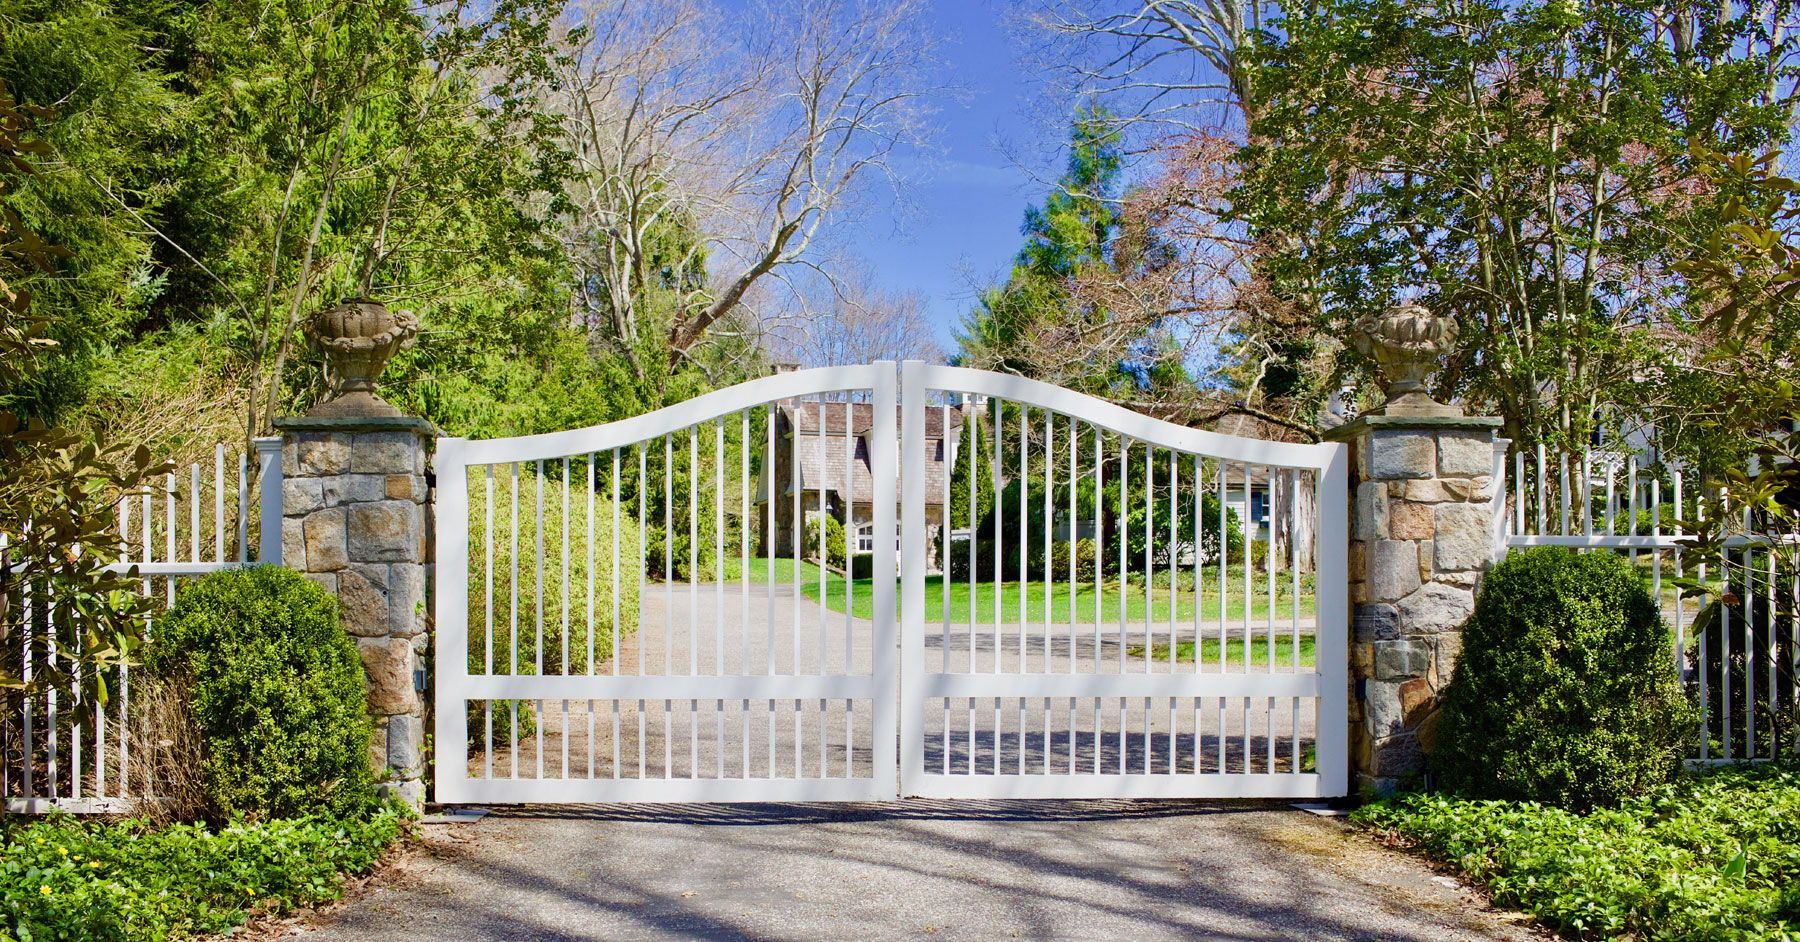 White Wood Picket Driveway Gate With Matching Picket Fence Gates By Tri State Gate Bedford Hills Ny Iron Gates Driveway Entrance Gates Iron Gates